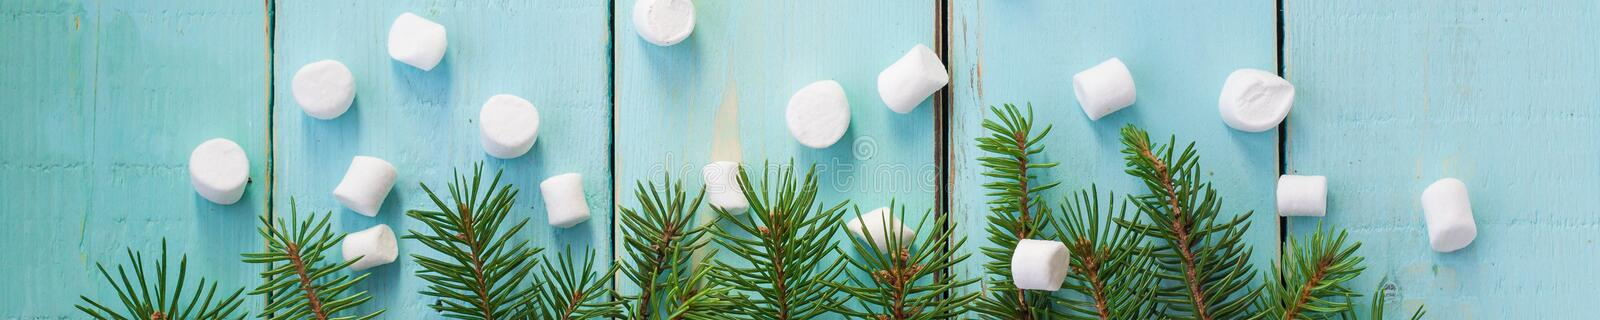 Banner of Christmas border with branch of fir tree and marshmallows on wooden background stock photos